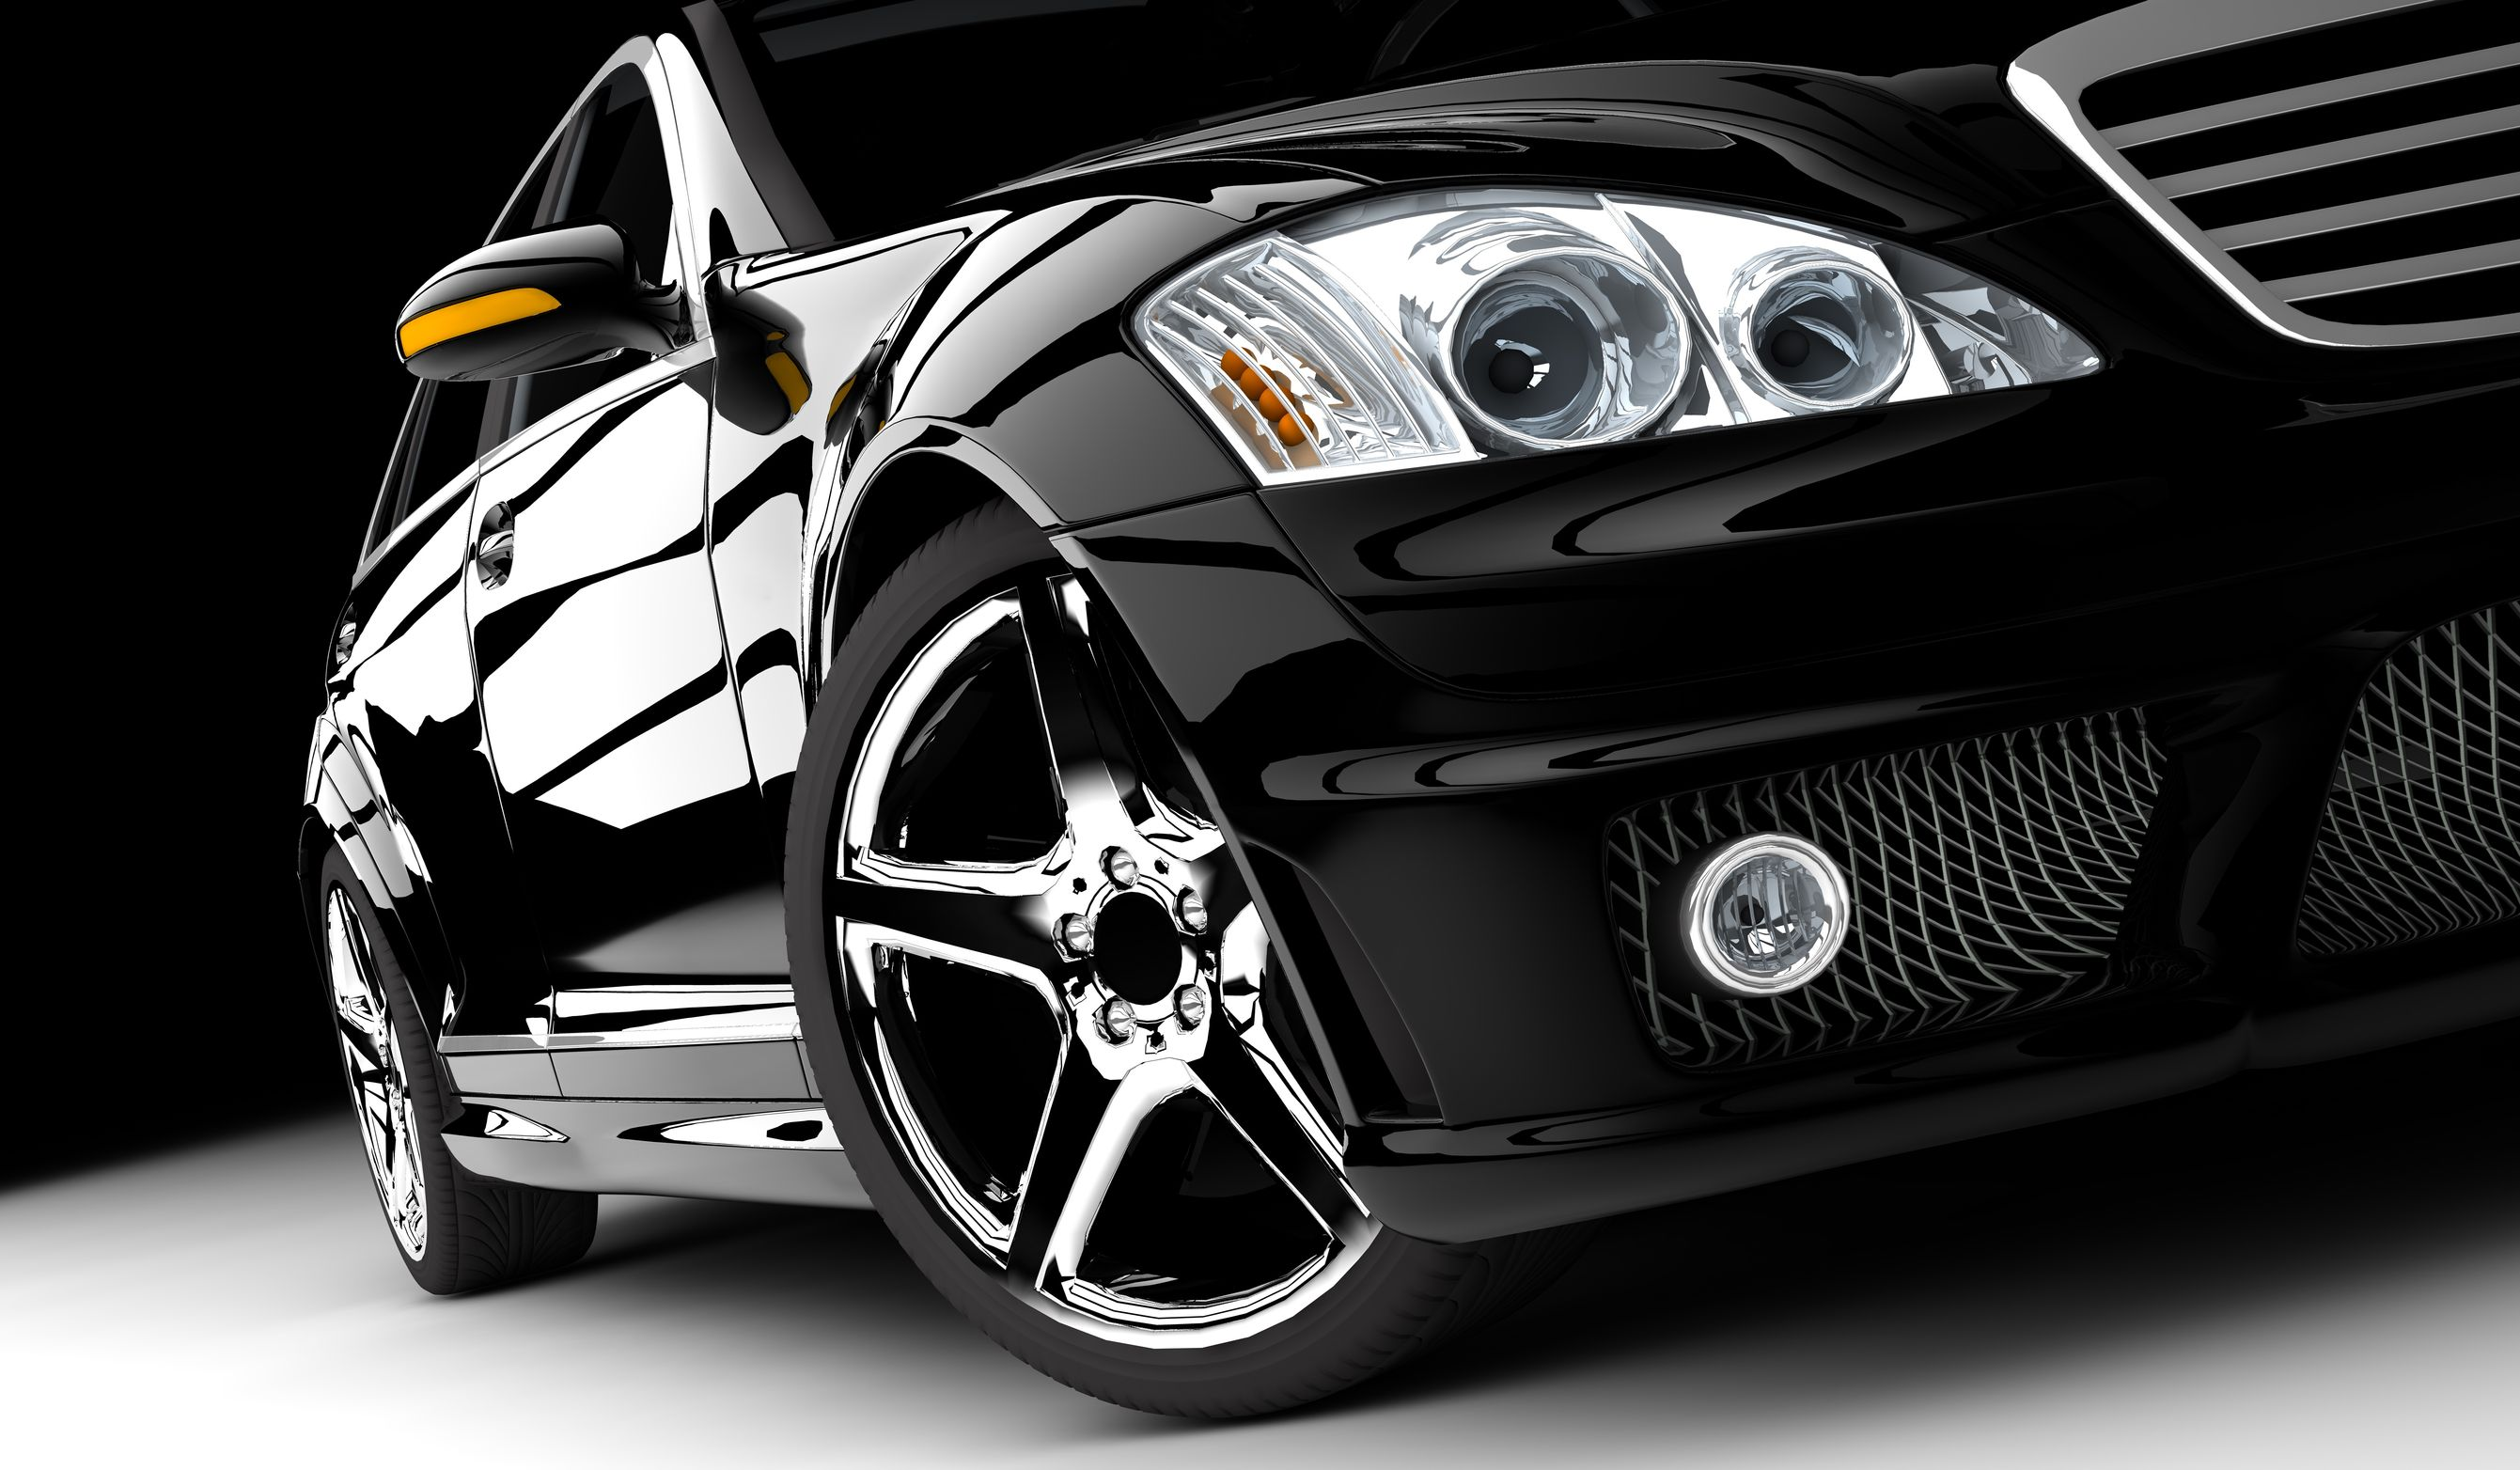 How Much Money Can You Make By Detailing Cars